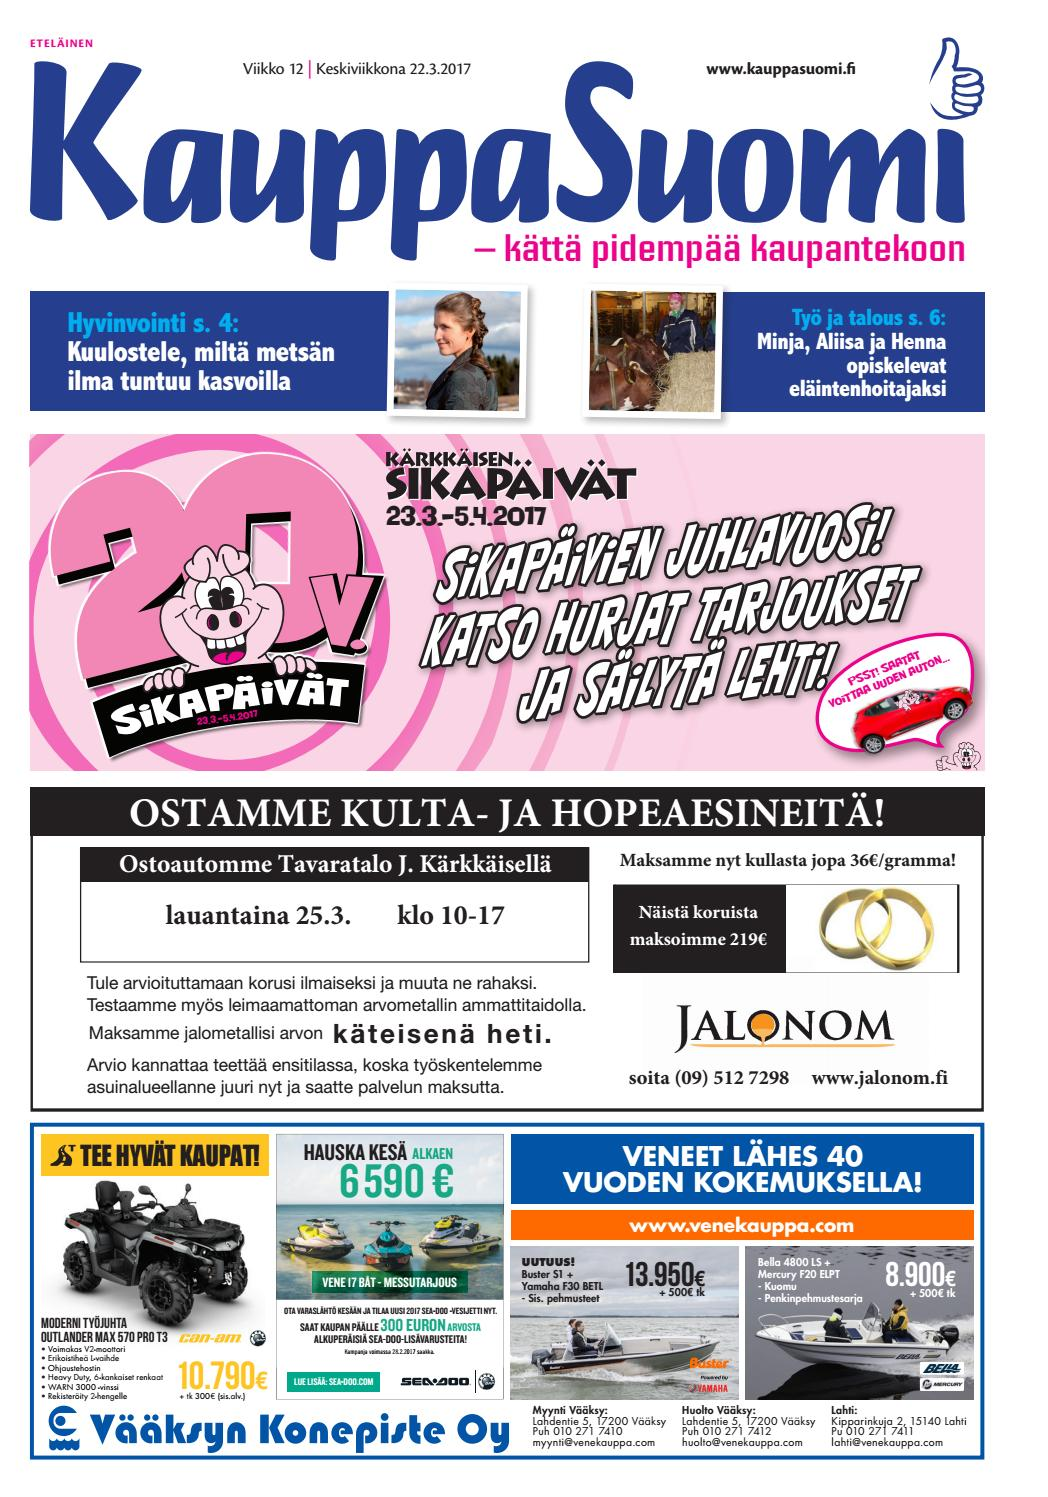 details for classic multiple colors KauppaSuomi 12/2017 (E) by KauppaSuomi - issuu